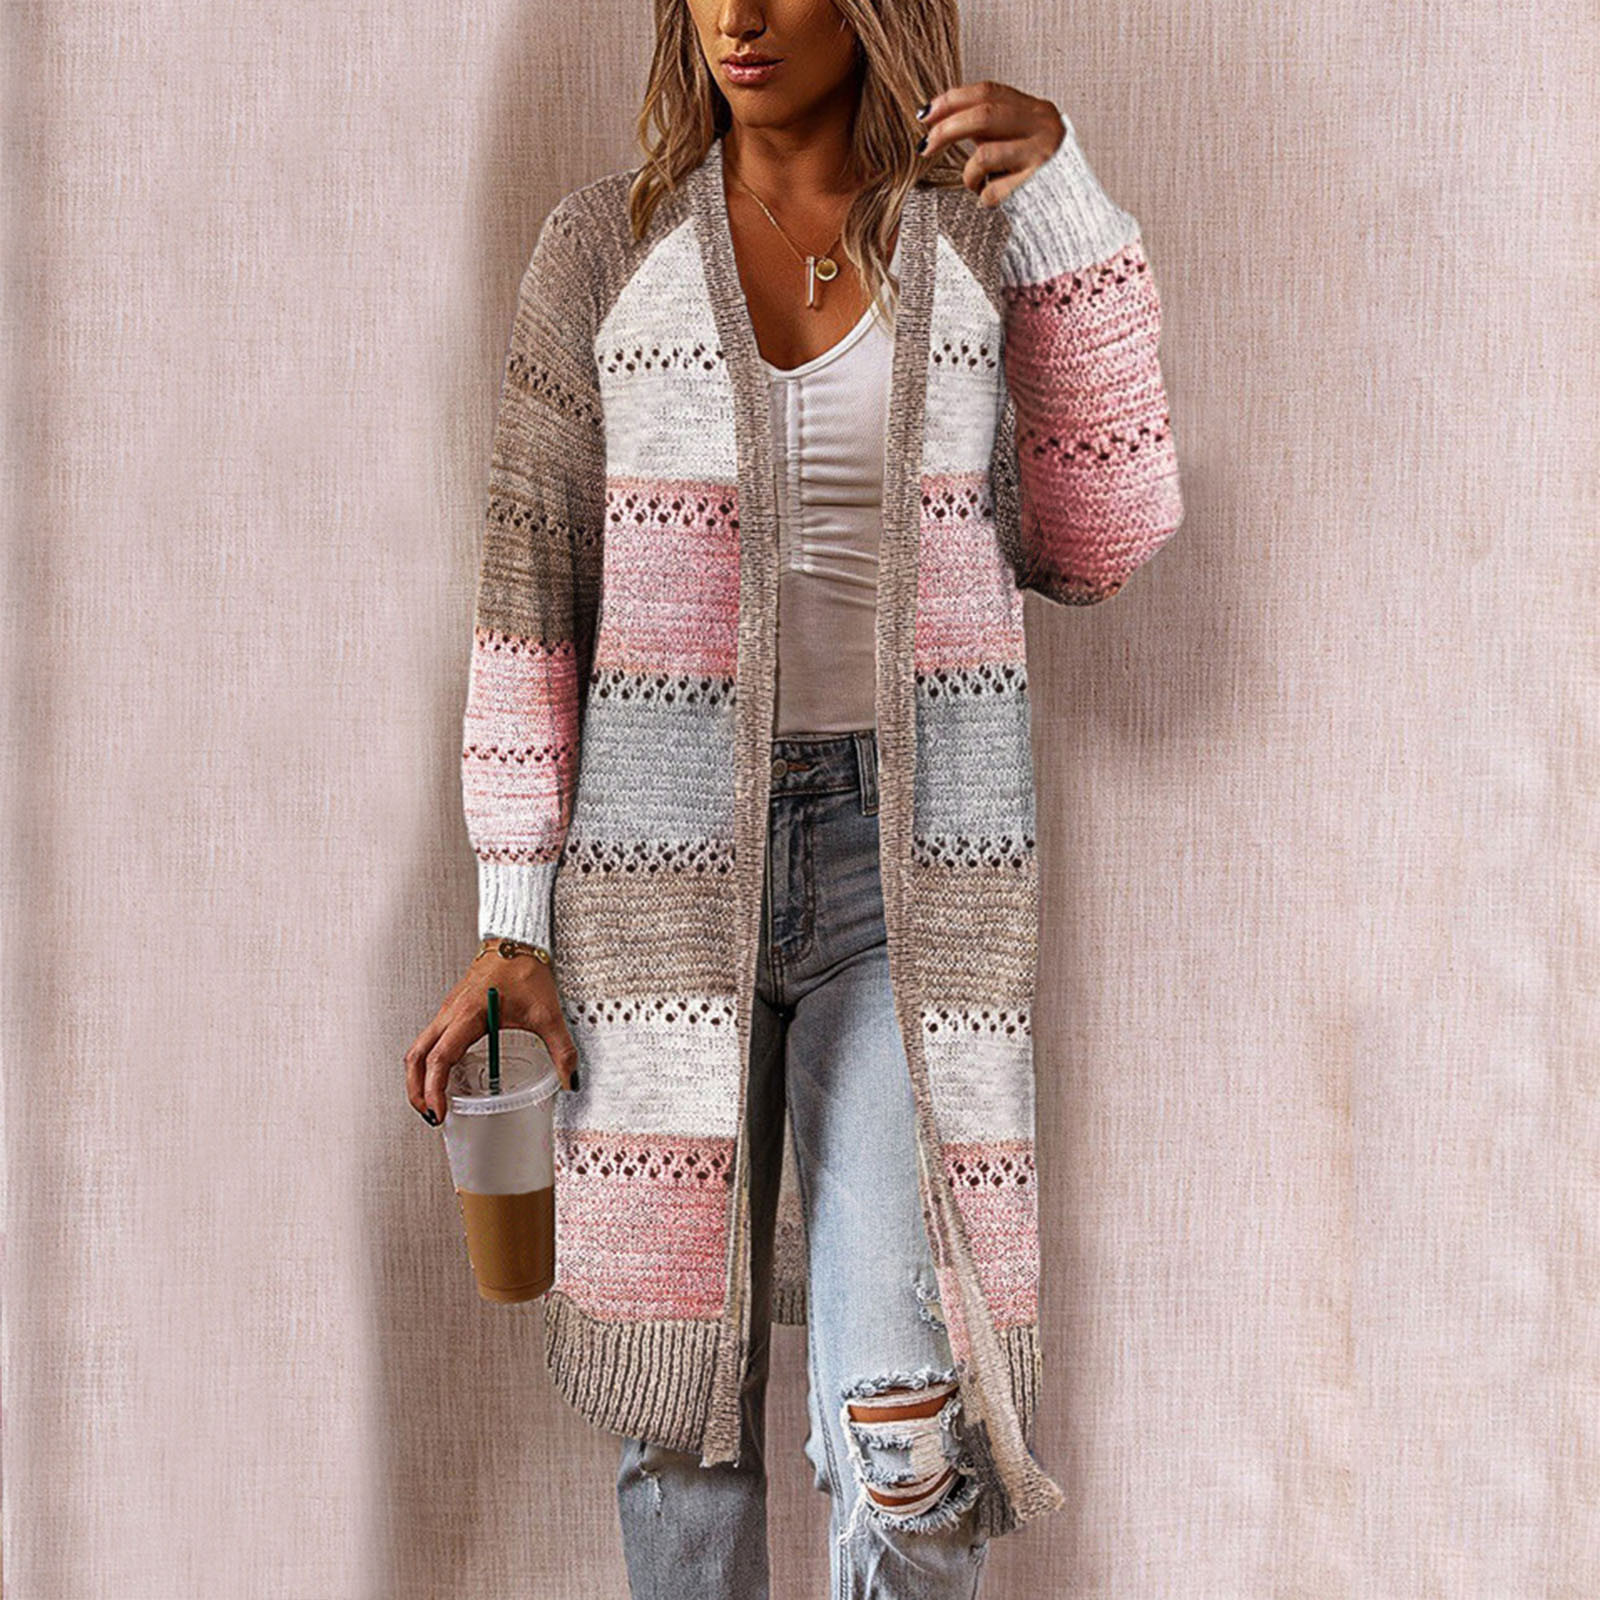 Women Cardigan Comfy Stylish Stitching Long Sleeve Striped Patchwork Sweater Female Casual Long Cardigan Autumn Winter Tops